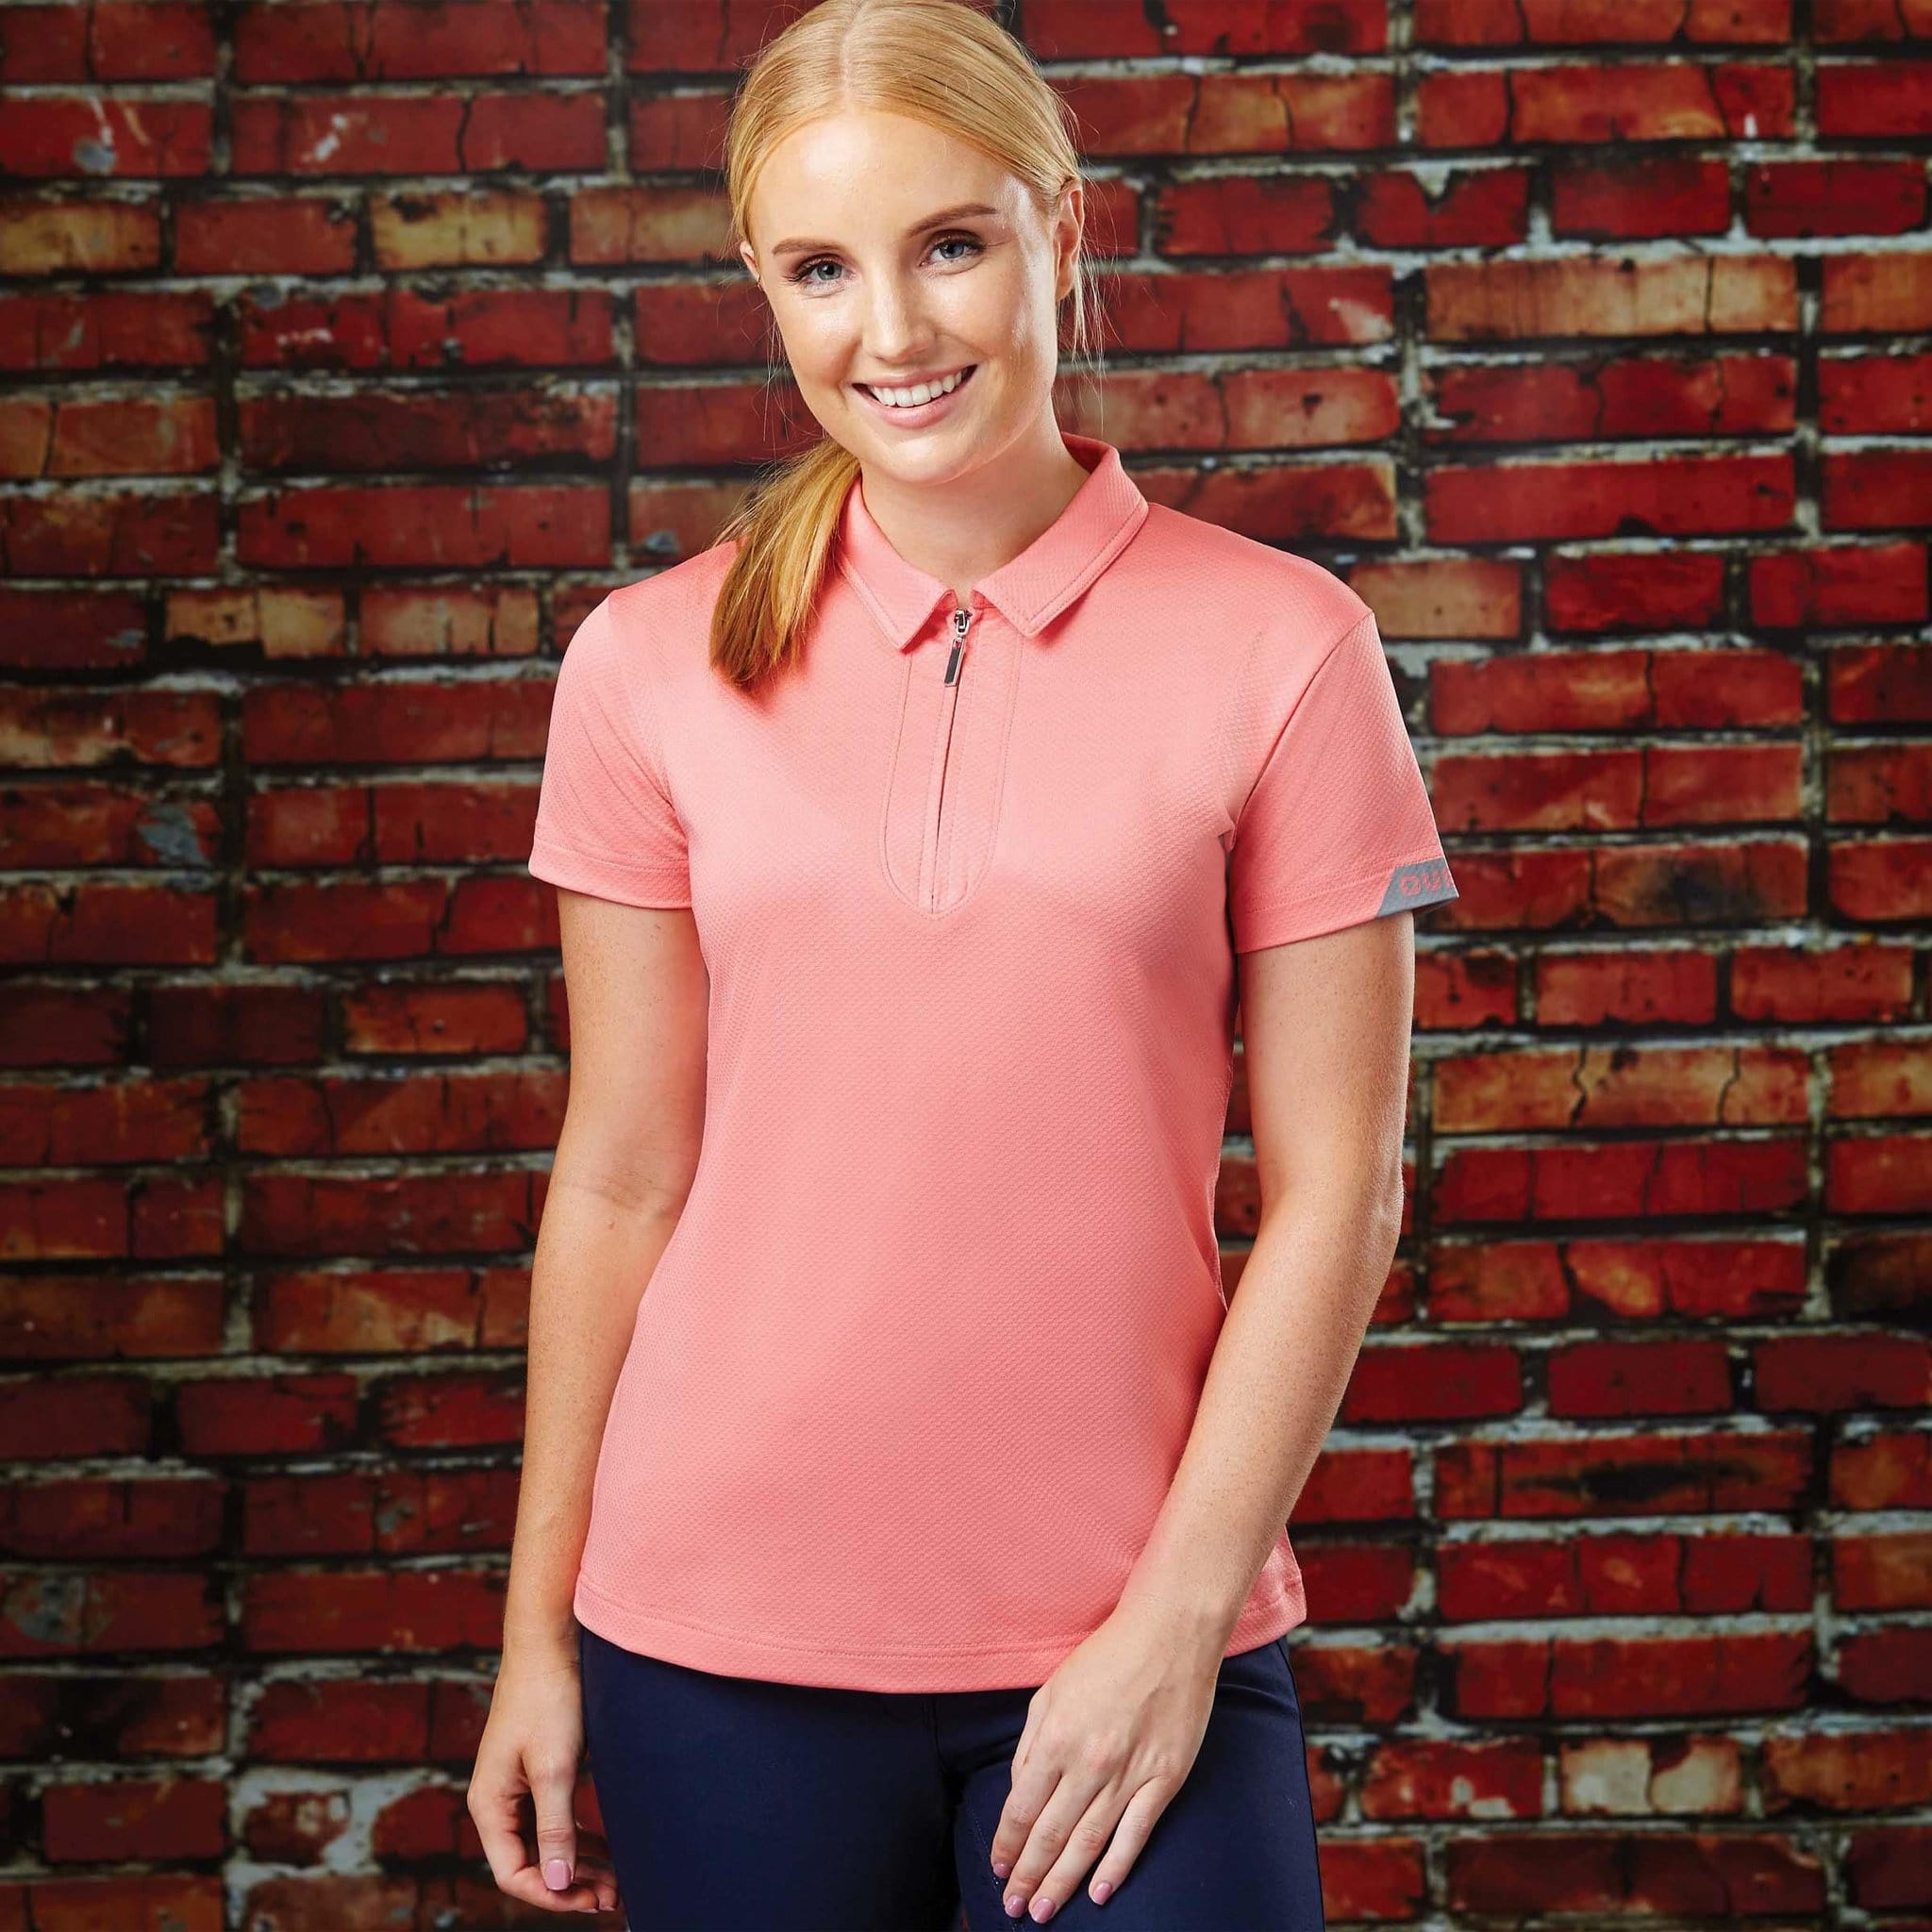 Dublin Columba Short Sleeve Tech Polo Top Pink On Model 813007